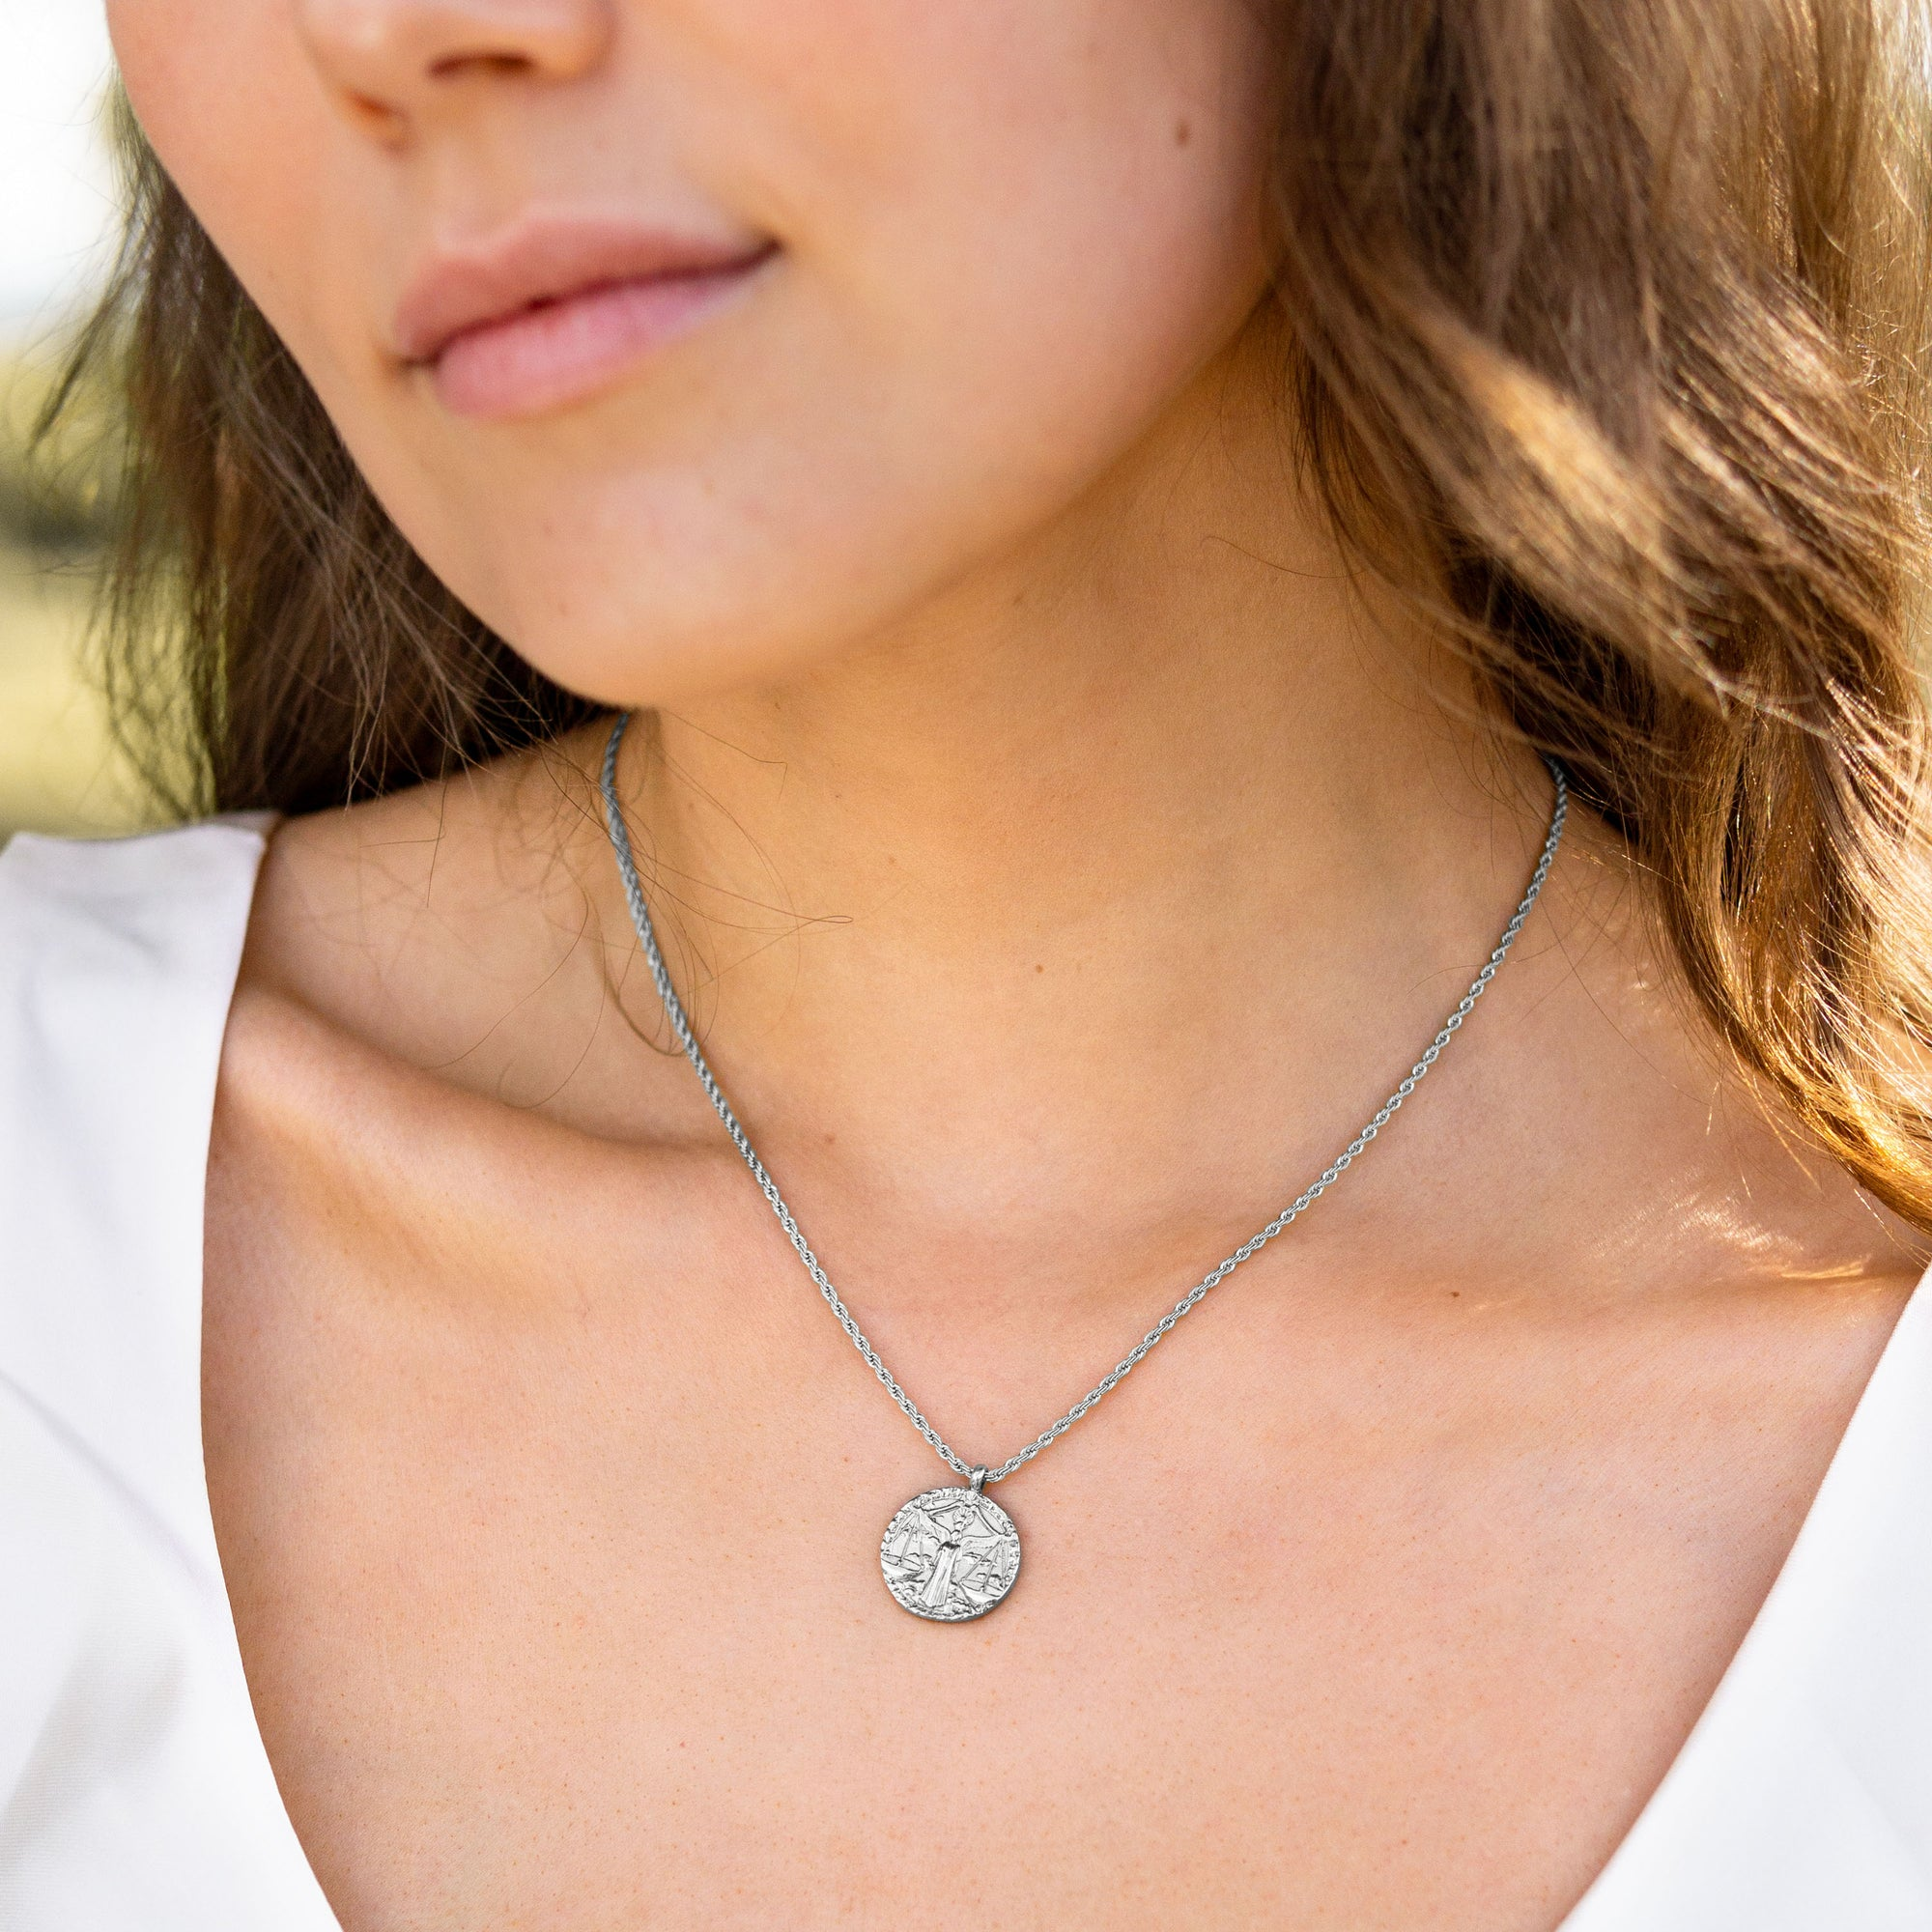 Libra / Waage Necklace Silber